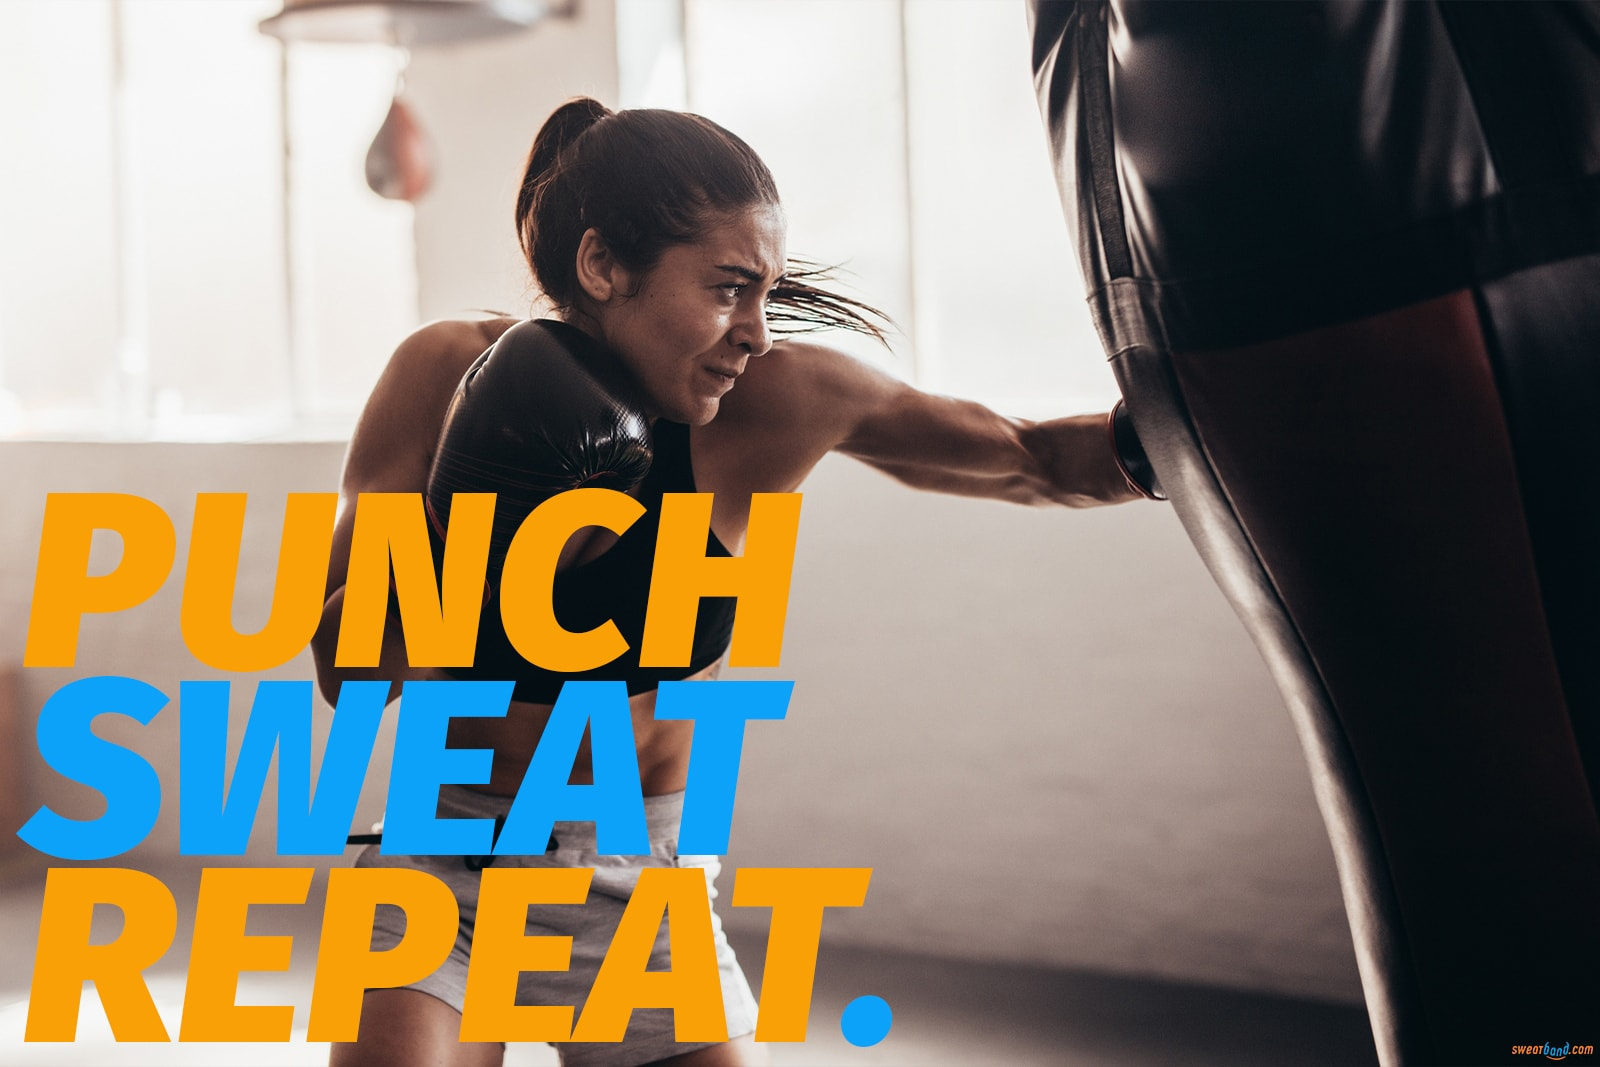 Punch your way fitter